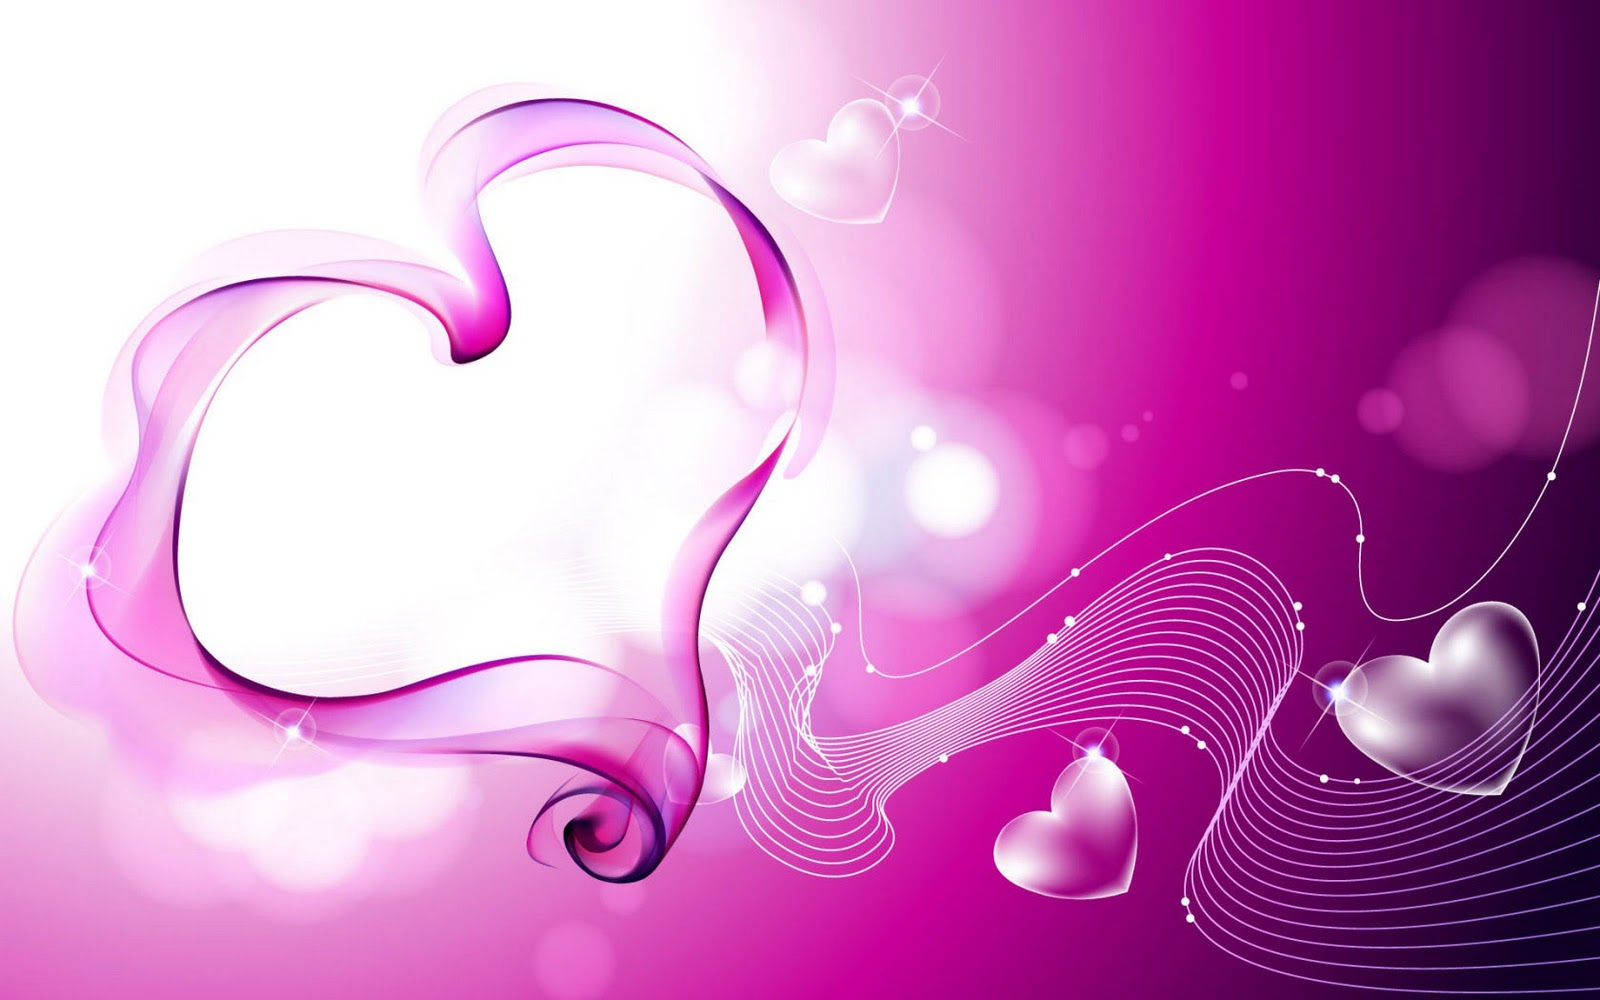 I Love You Jaan Wallpaper Hd : november 2011 HD Wallpapers